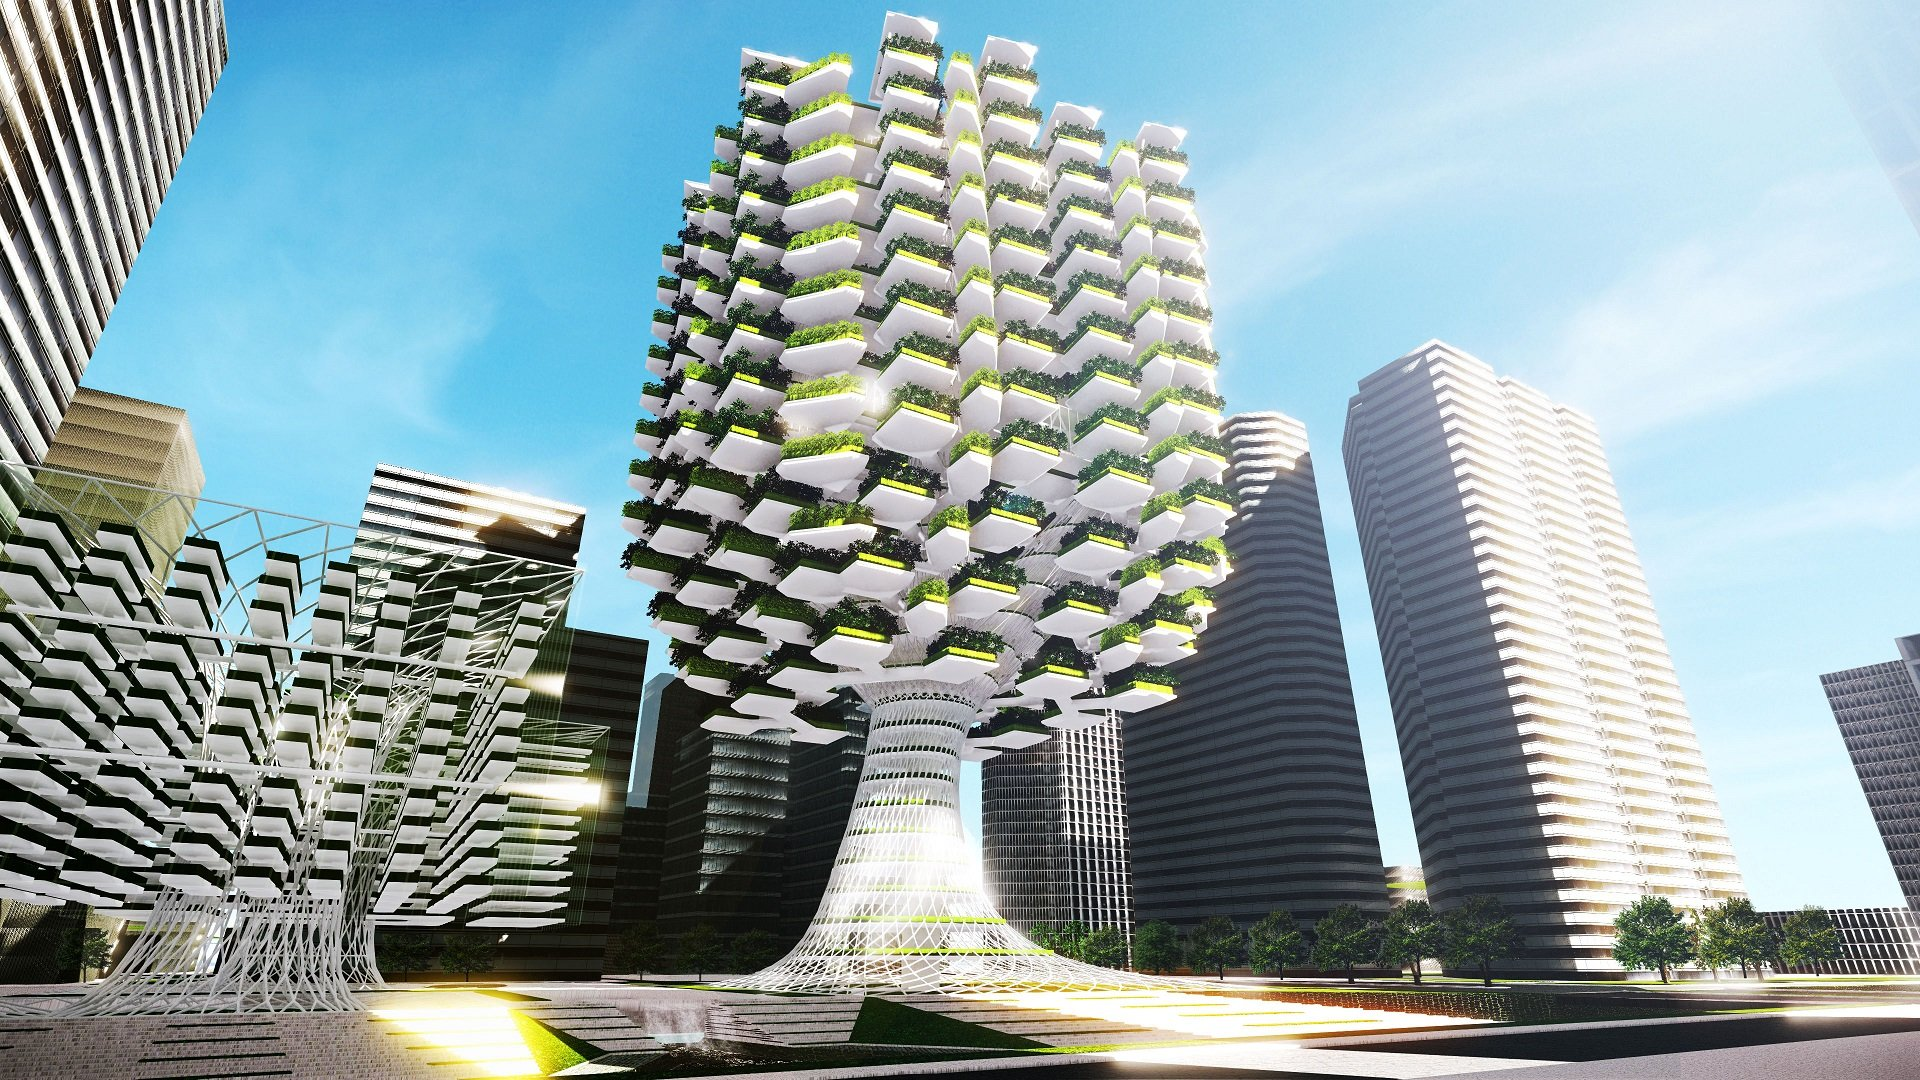 Green Streets How Plantlife Is Inspiring Modern Architecture Virgin